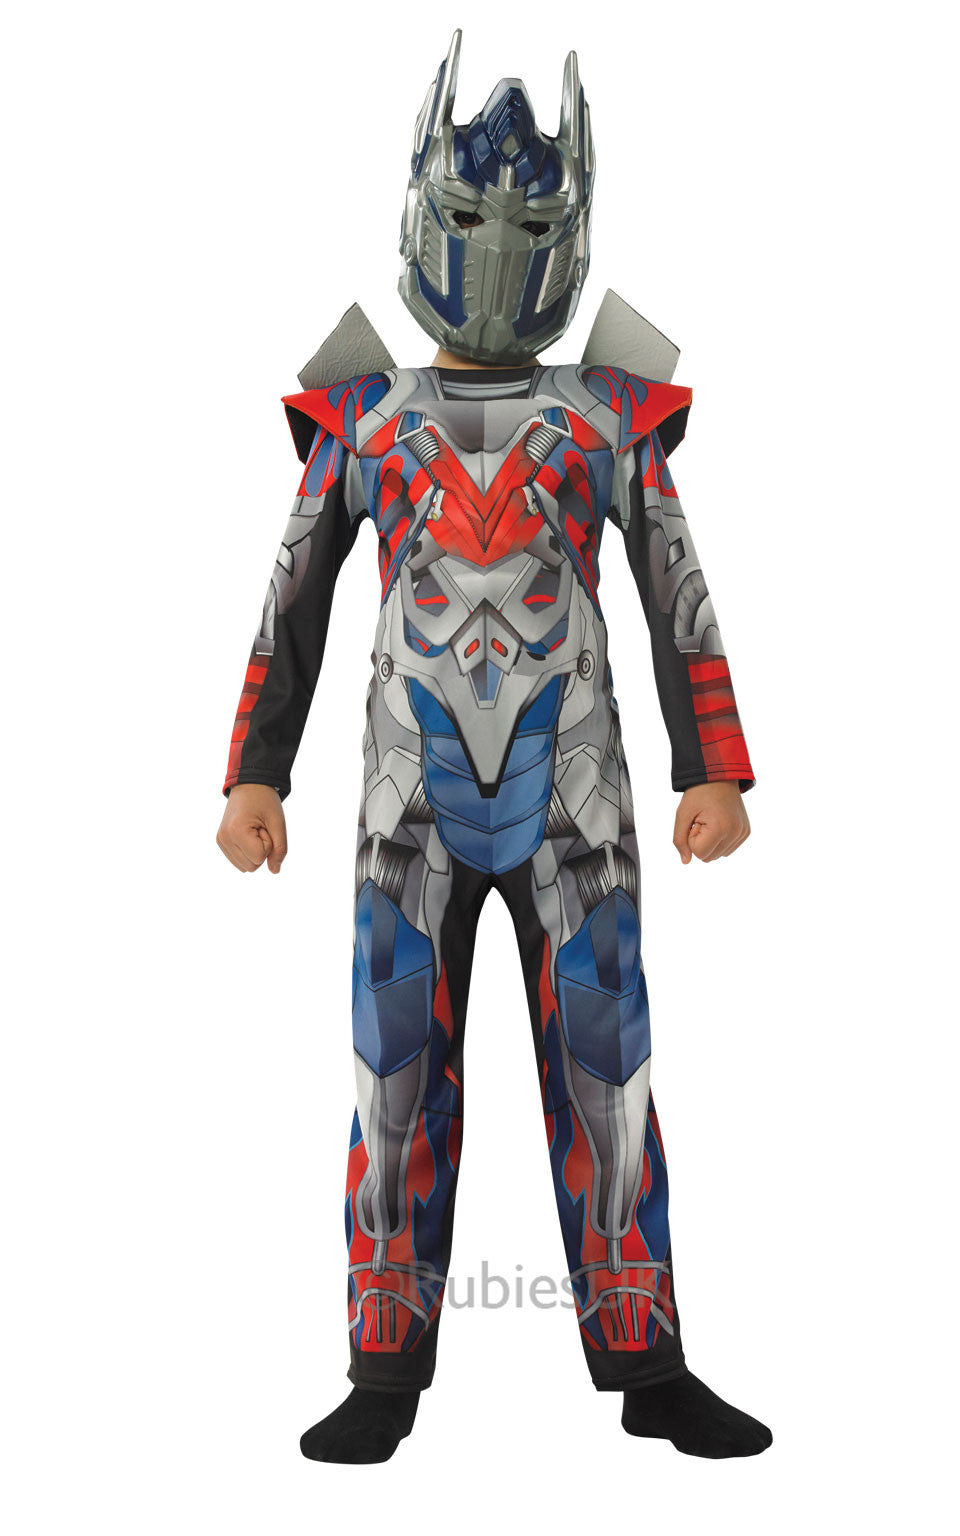 OPTIMUS PRIME TRANSFORMERS 4 DELUXE COSTUME, CHILD - SIZE S